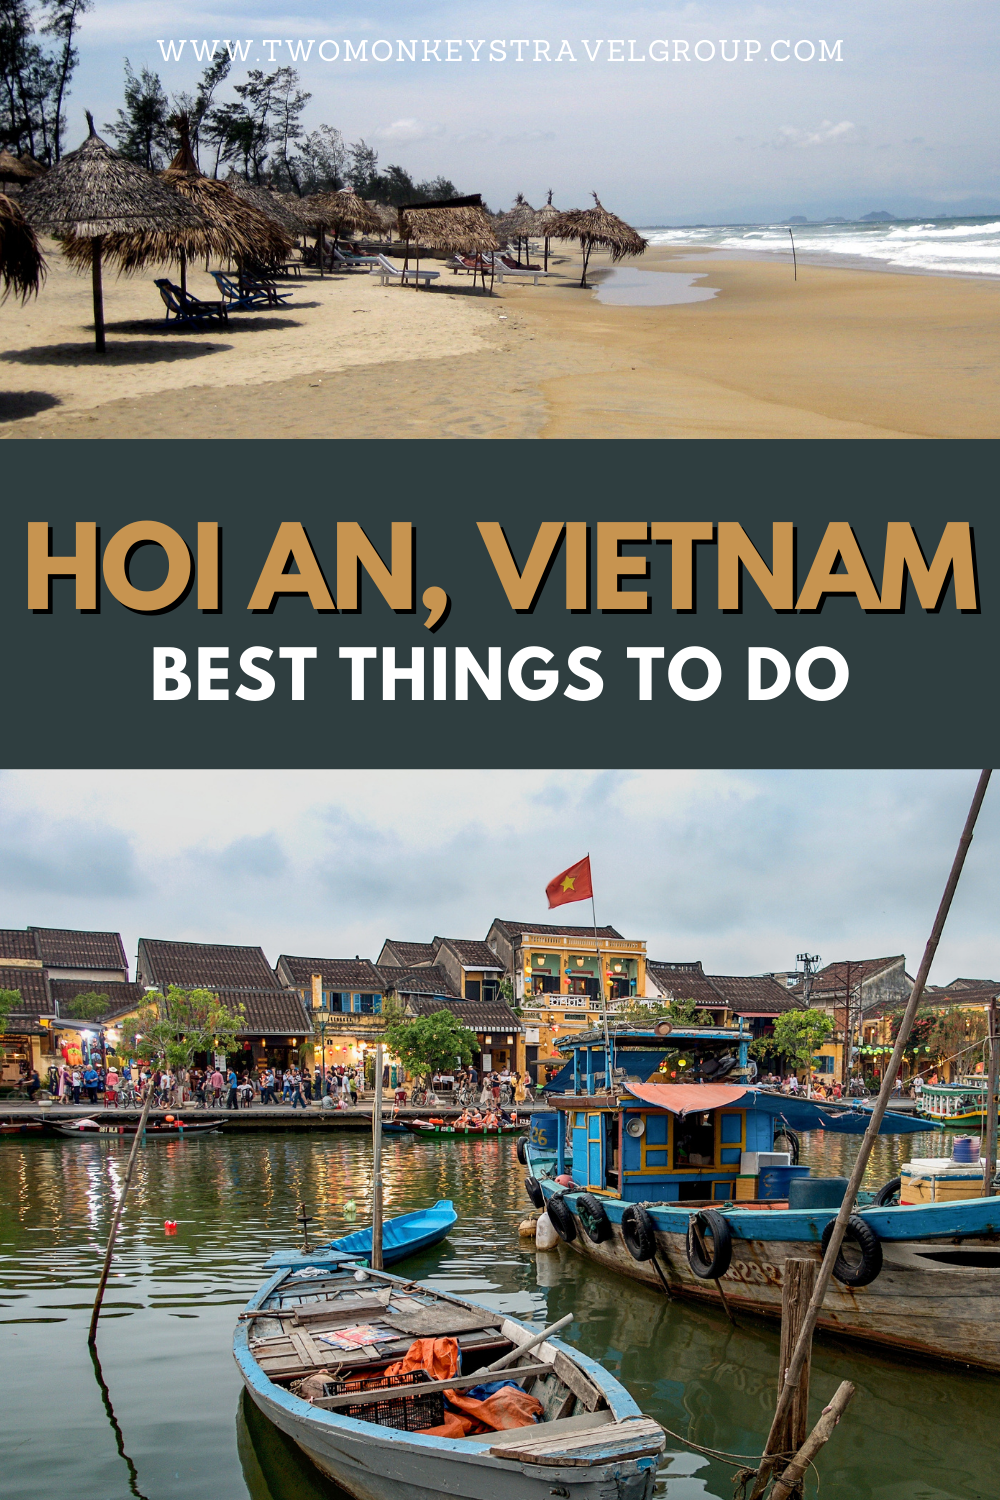 10 Best Things to do in Hoi An, Vietnam [with Suggested Tours]